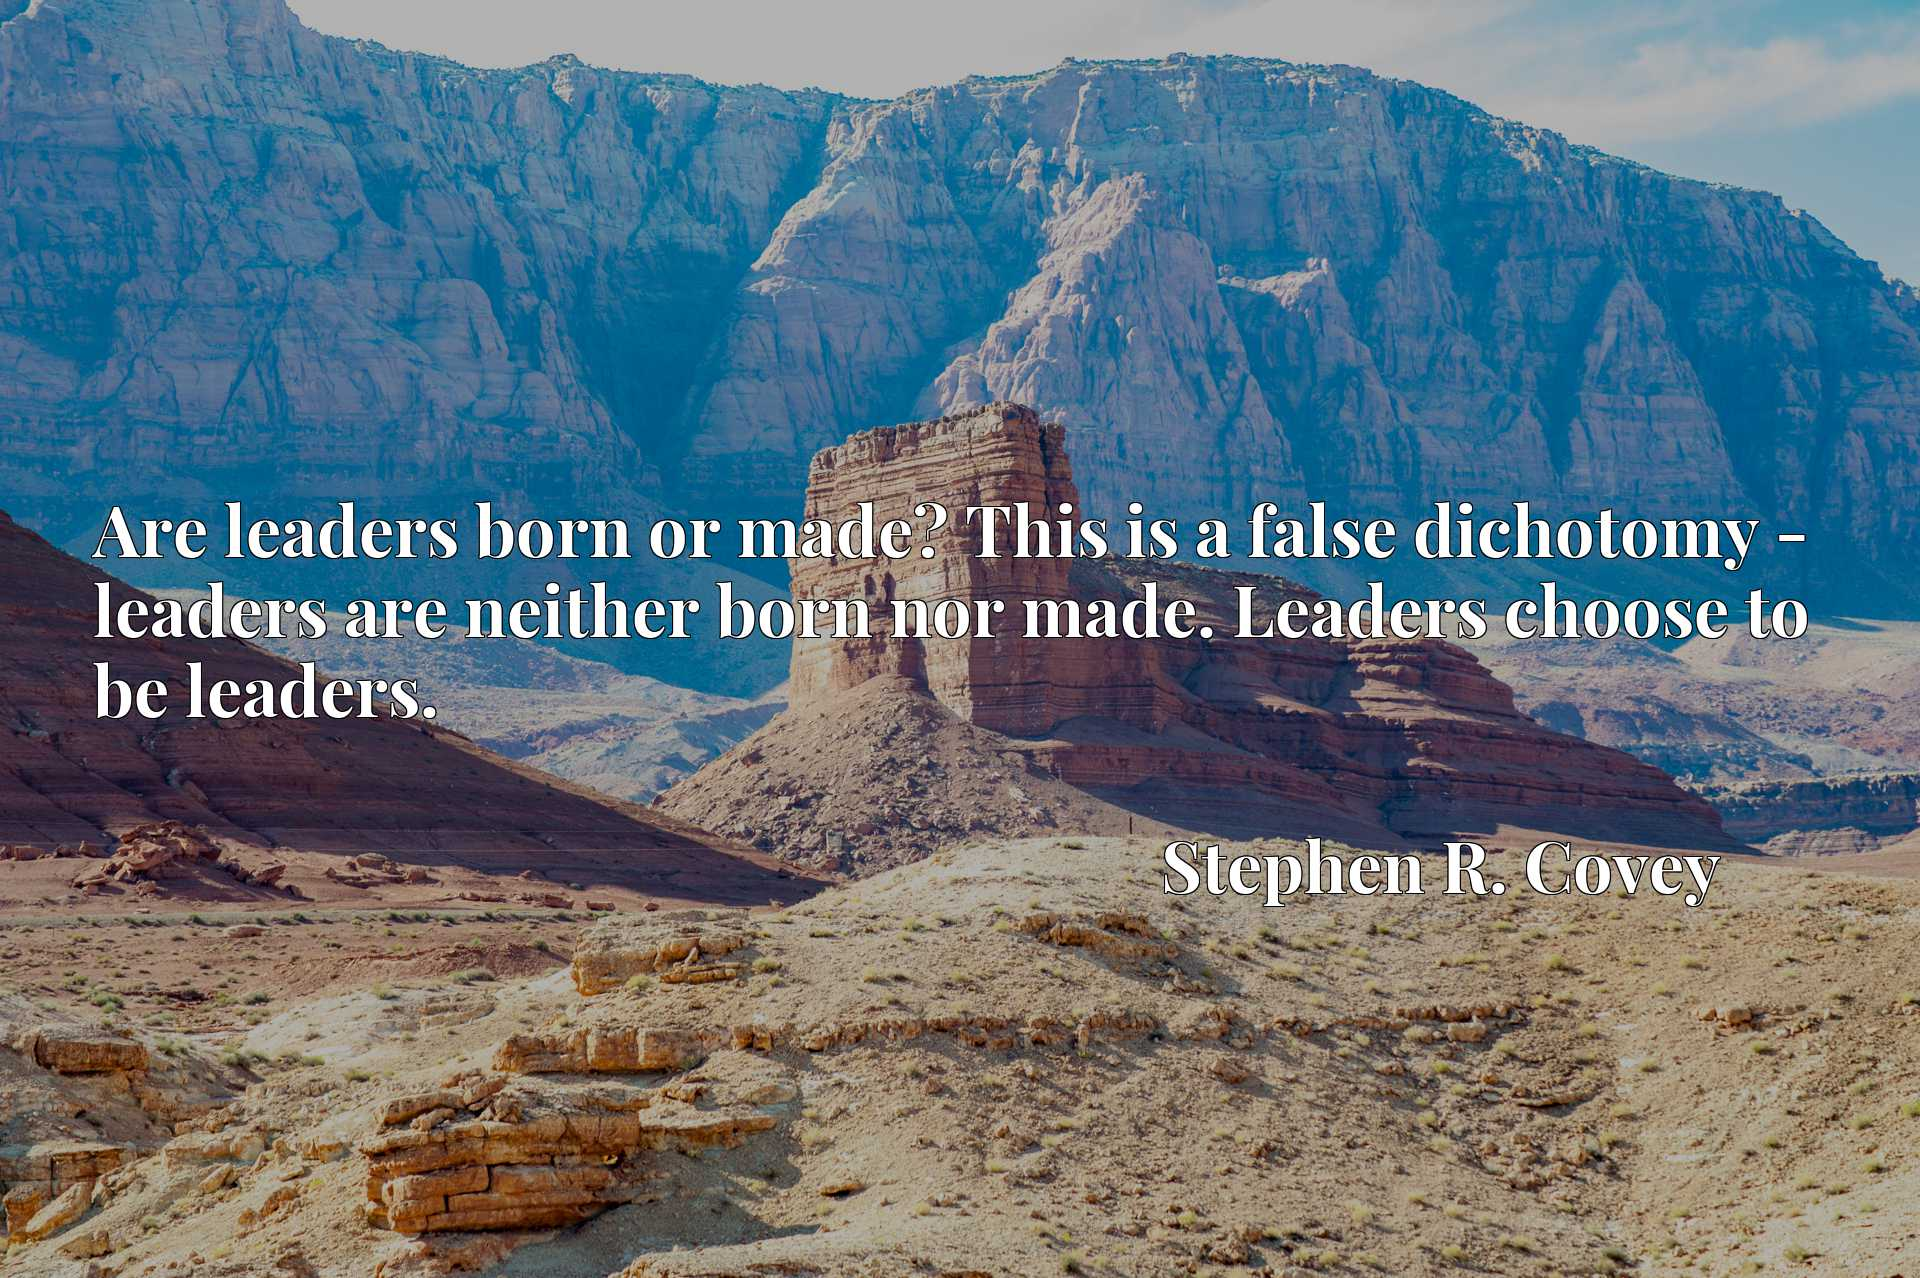 Are leaders born or made? This is a false dichotomy - leaders are neither born nor made. Leaders choose to be leaders.